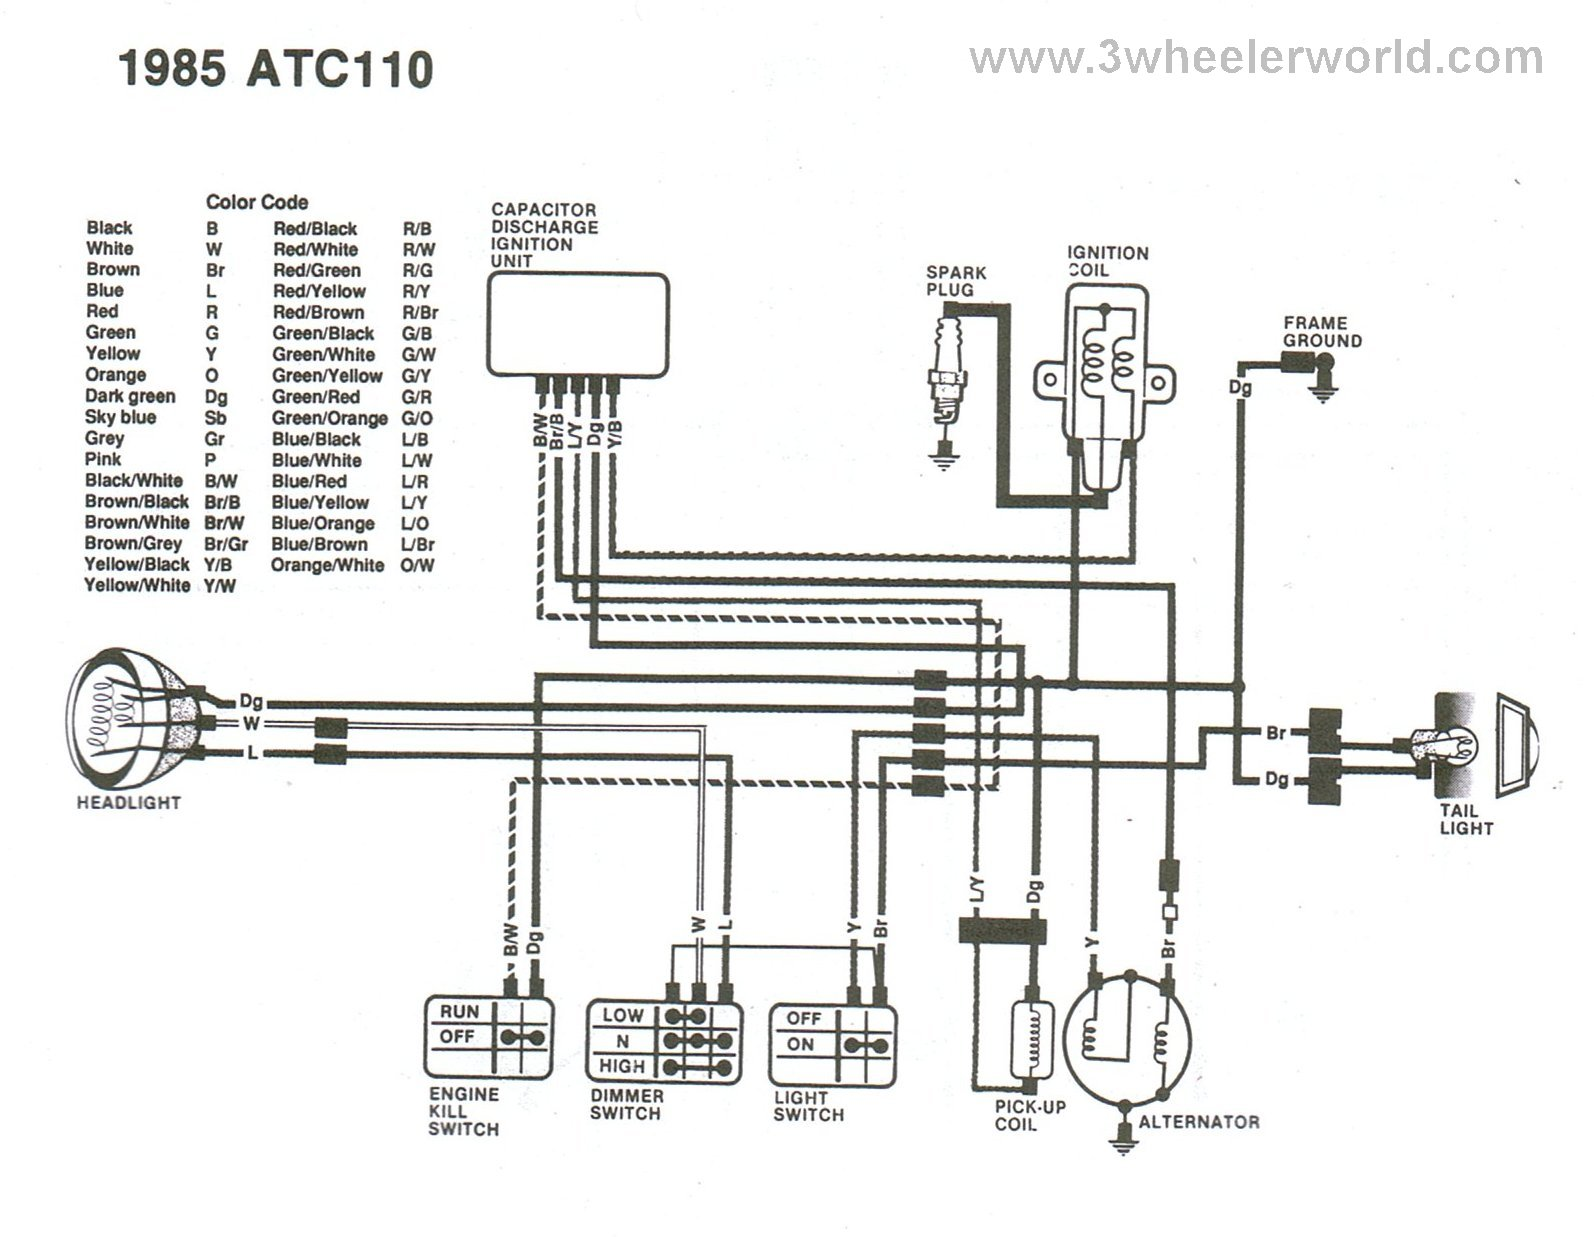 ATC110x85 3 wheeler world tech help honda wiring diagrams 1985 honda atc 110 wiring diagram at virtualis.co